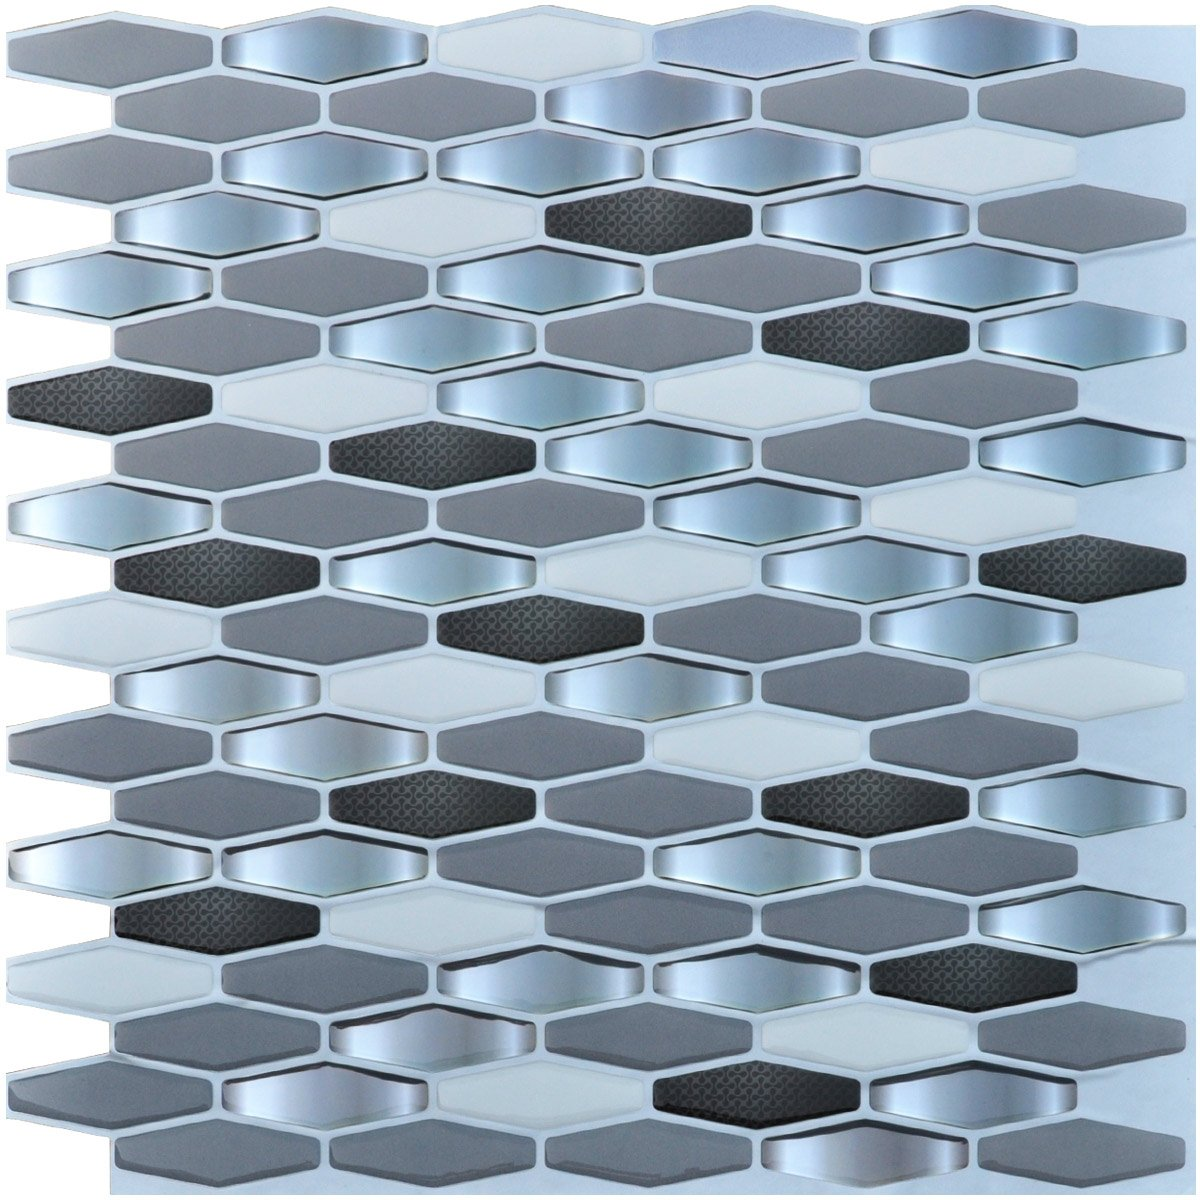 Art3d Peel And Stick Kitchen Backsplash Wall Tile Pack Of